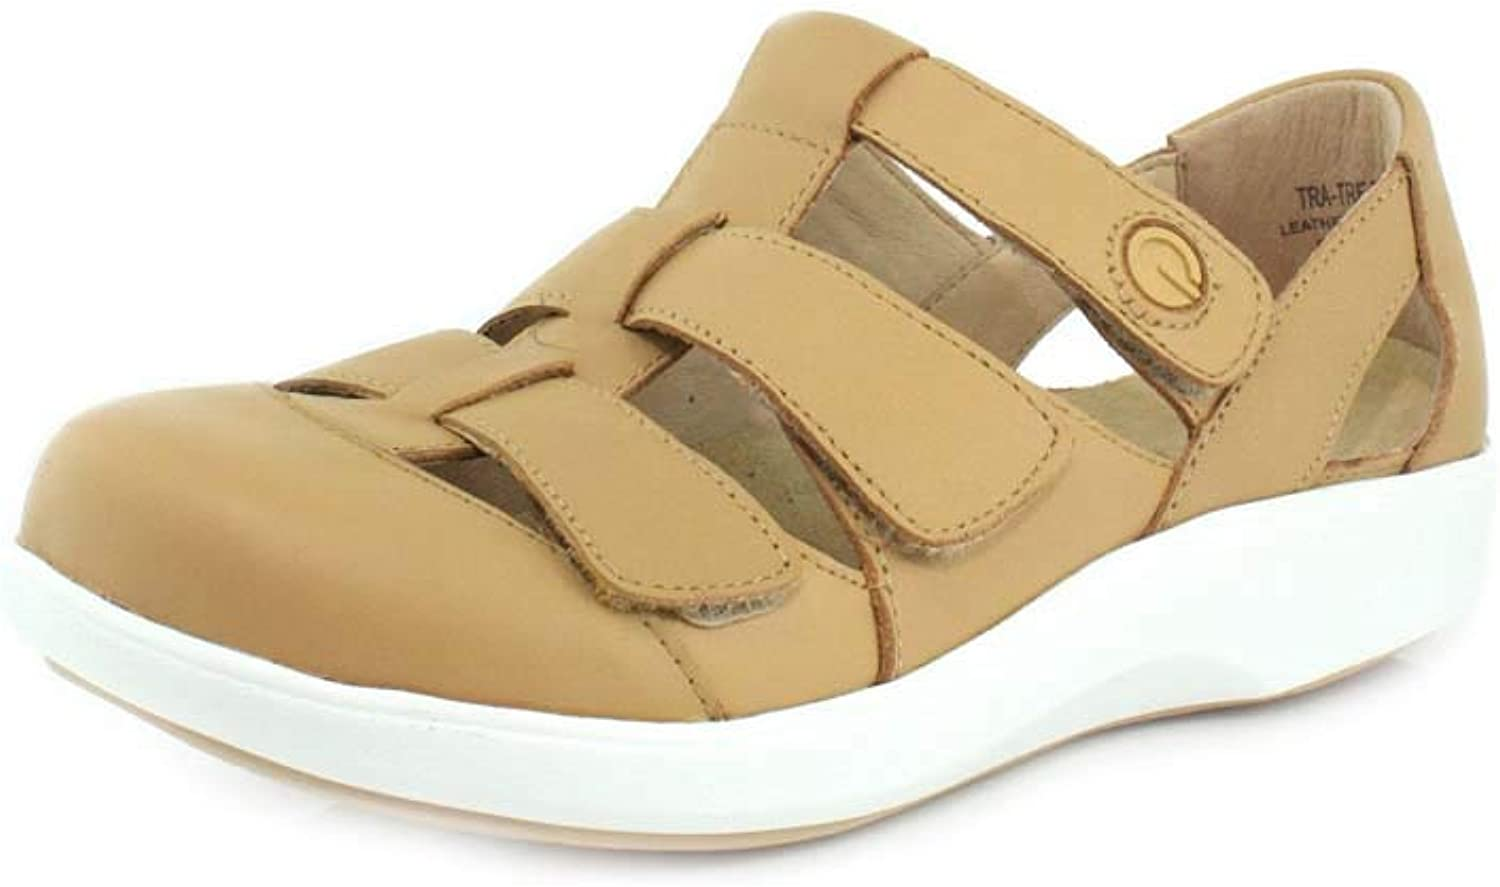 TRAQ BY ALEGRIA Treq Womens Smart Walking shoes